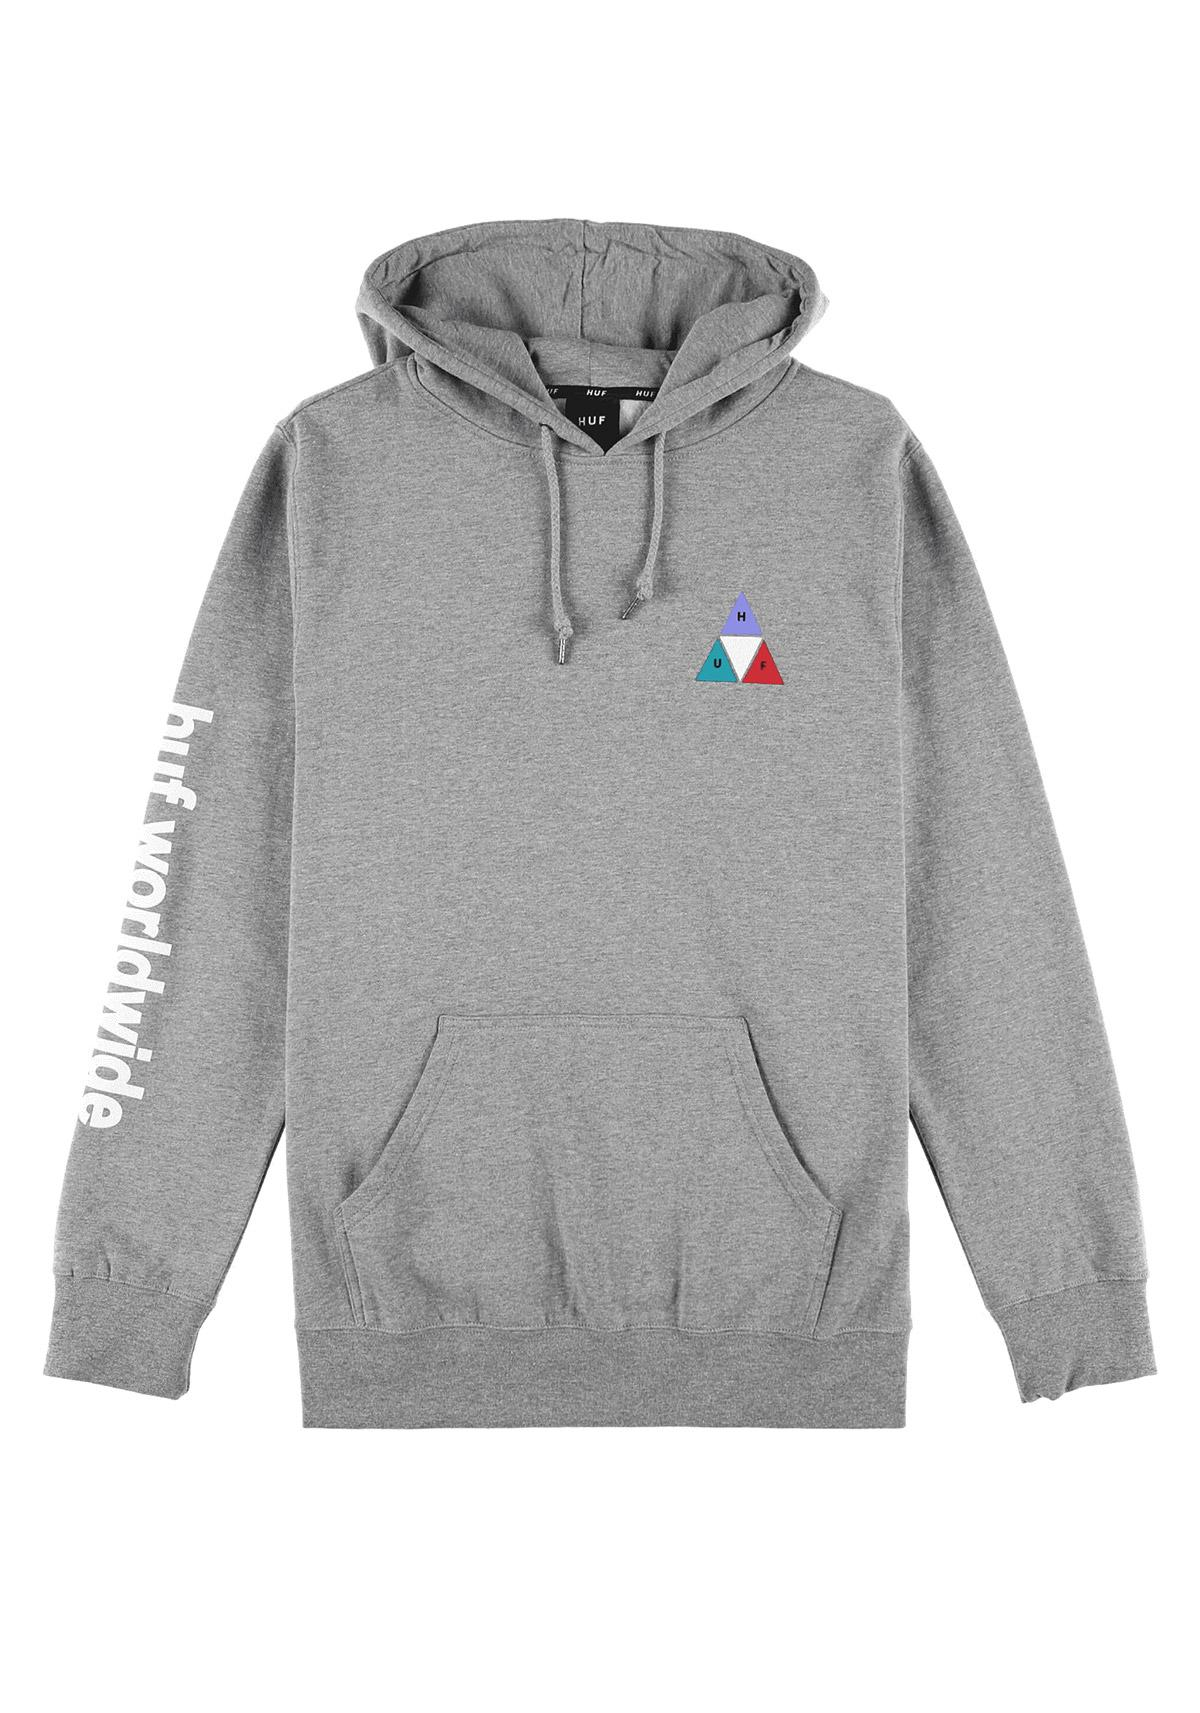 Hooded HUF Prism Triple Triangle